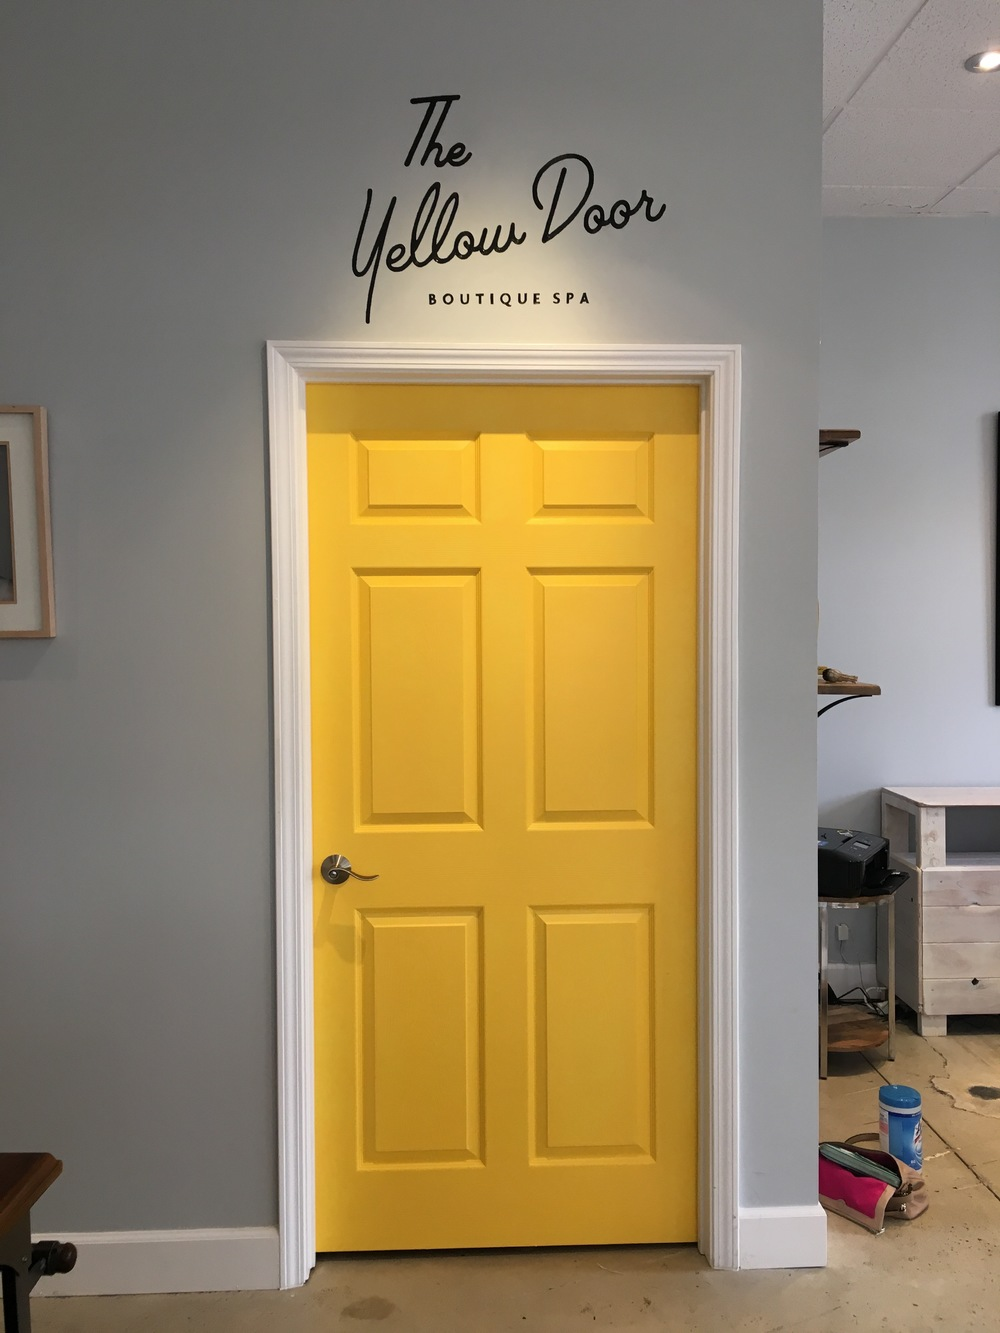 logo paint on The Yellow Door Boutique Spa materials: pencil, black paint